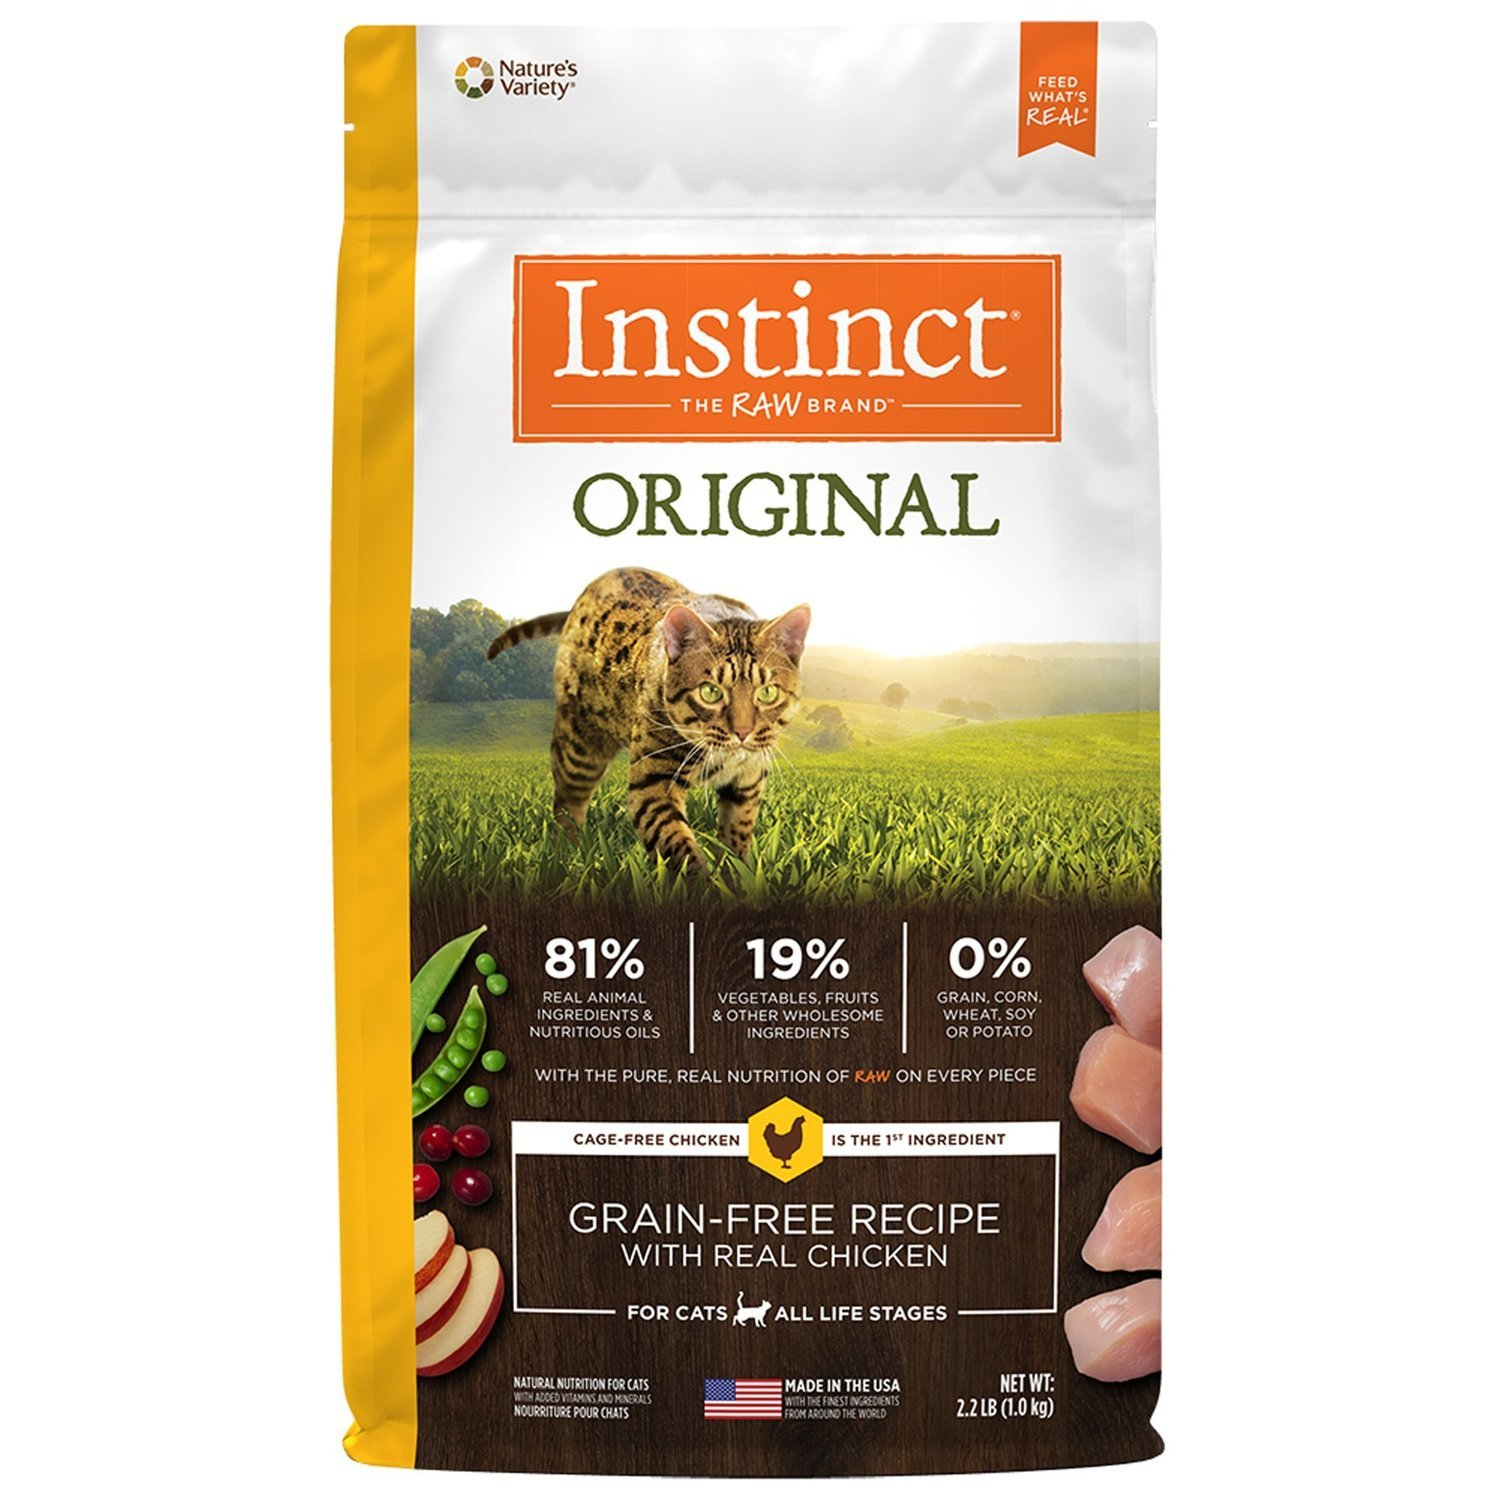 Nature's Variety Instinct Grain-Free Chicken Meal Cat Food, 2.2 lbs. (3/19) (A.J2)